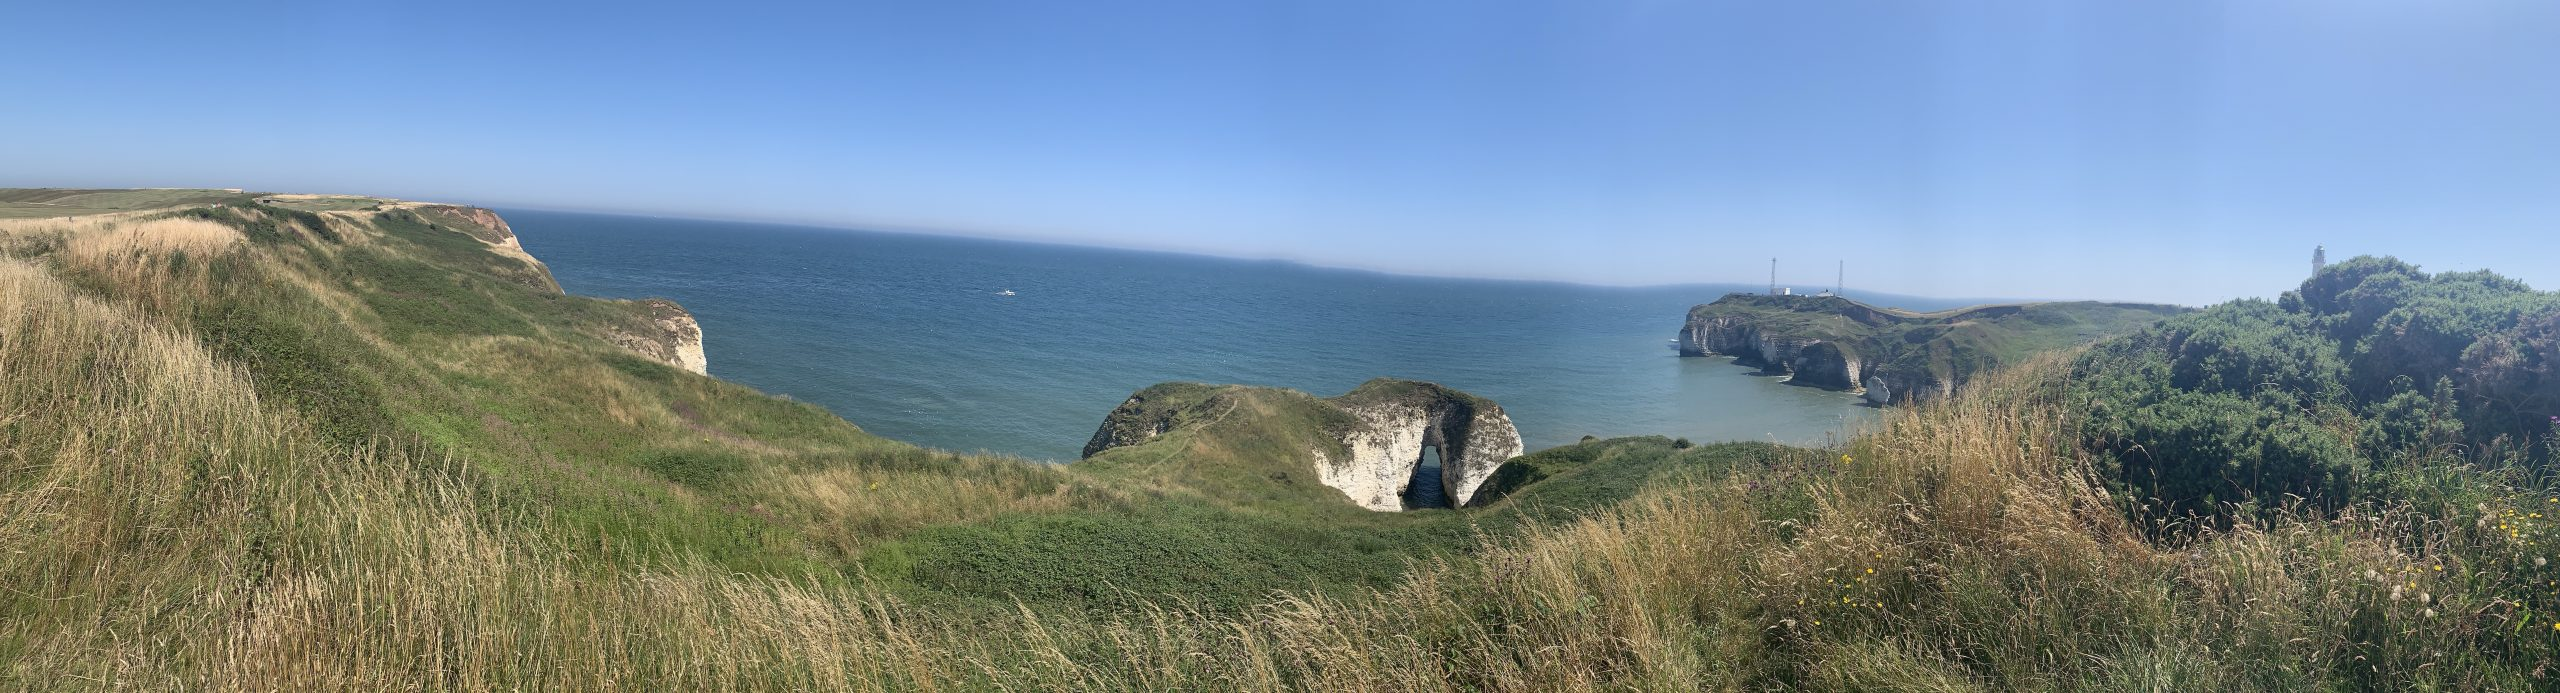 Flamborough head cliffs looking outing the sea